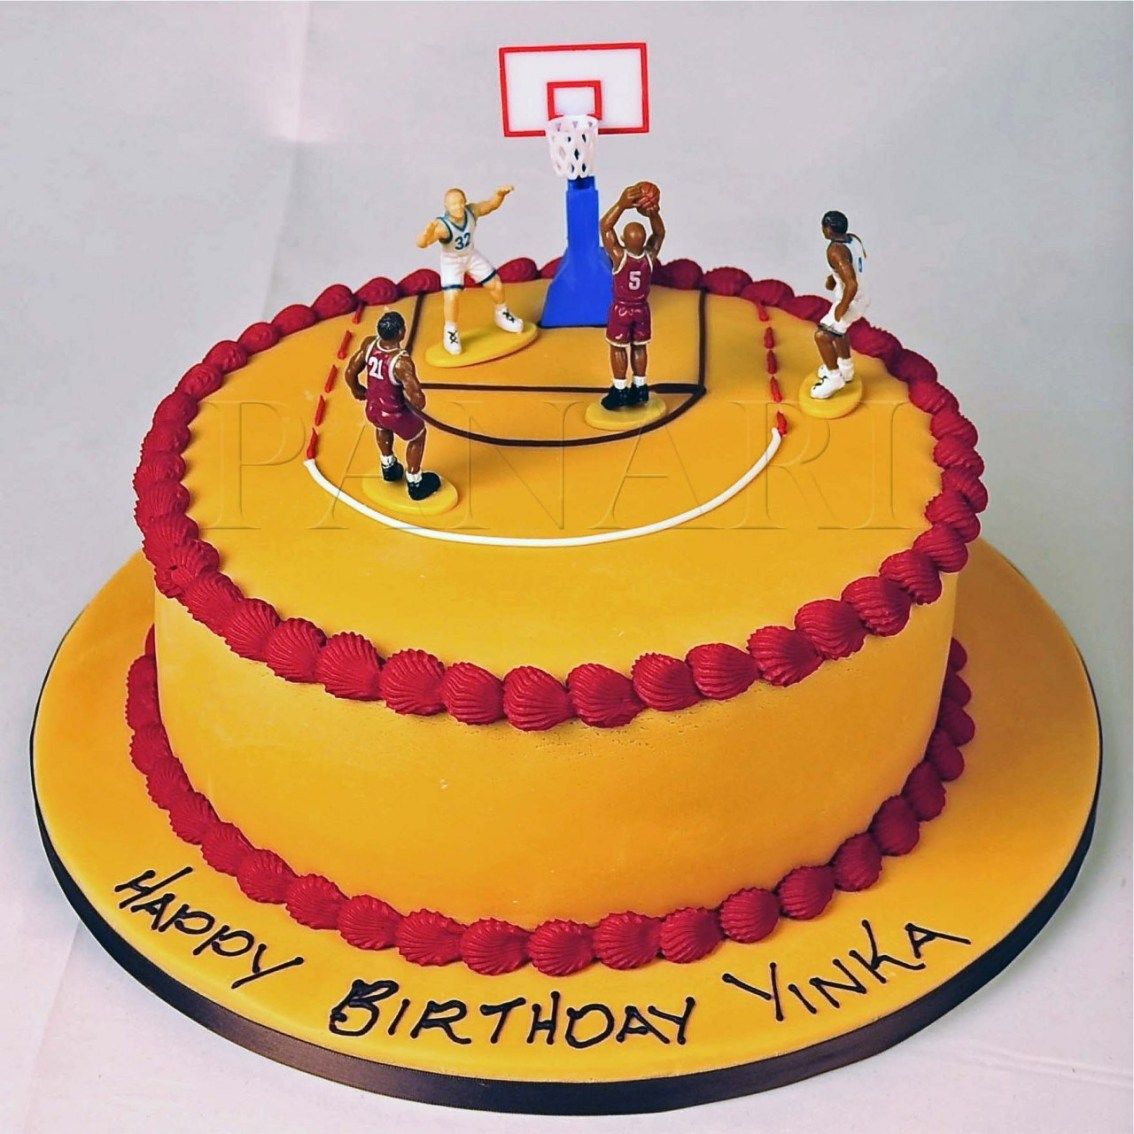 23 Excellent Picture Of Basketball Birthday Cakes Entitlementtrap Com Basketball Birthday Cake Basketball Cake Birthday Cake Toppers